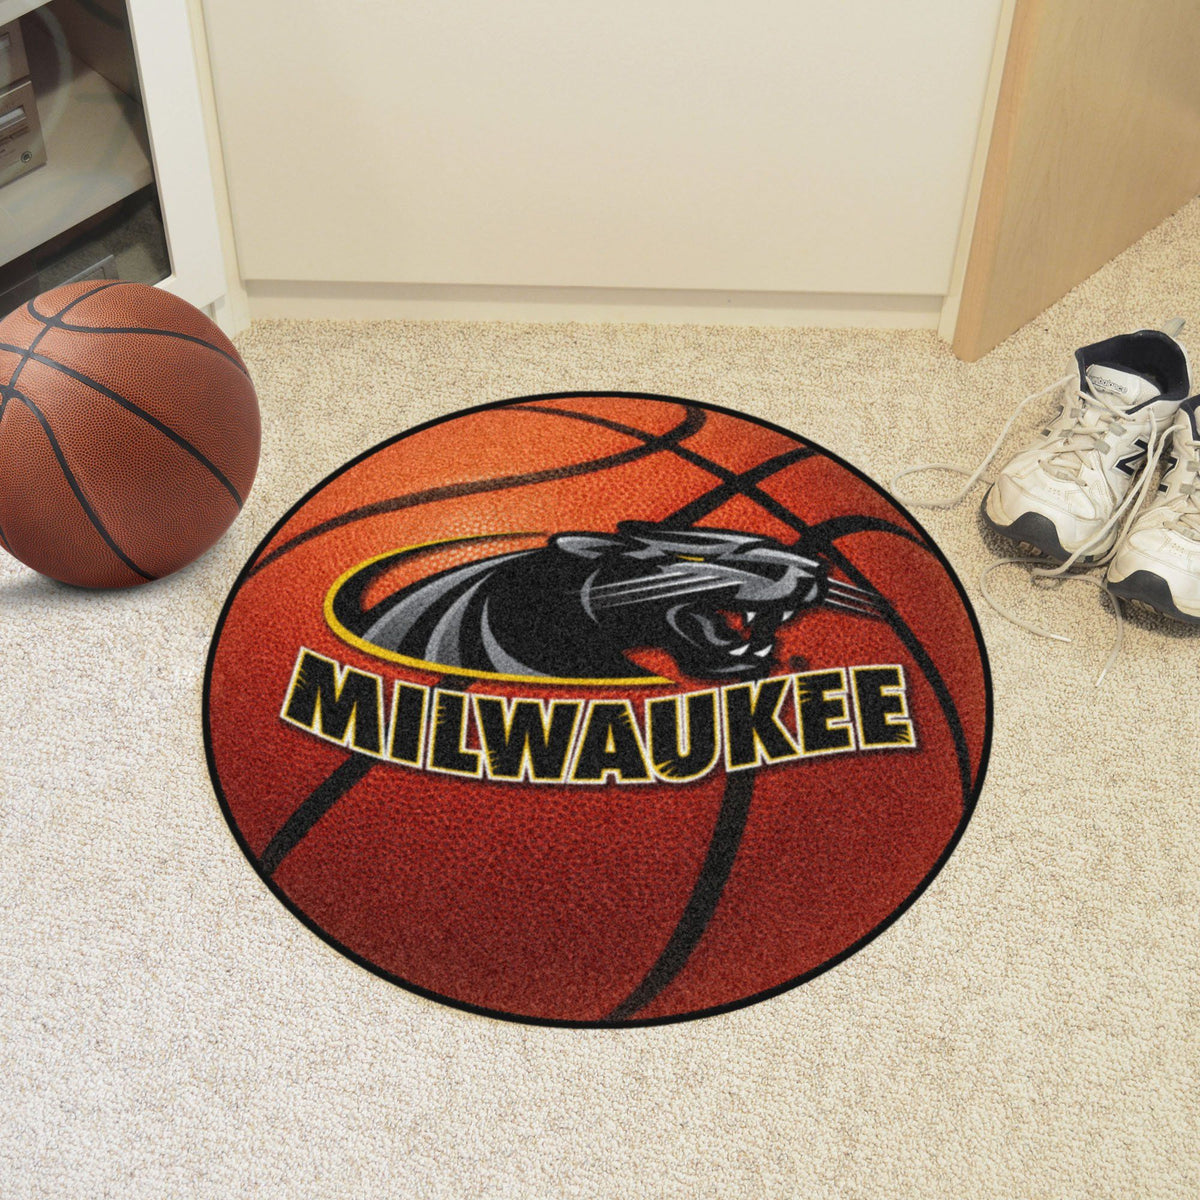 Collegiate - Basketball Mat: T - Z Collegiate Mats, Rectangular Mats, Basketball Mat, Collegiate, Home Fan Mats Wisconsin-Milwaukee